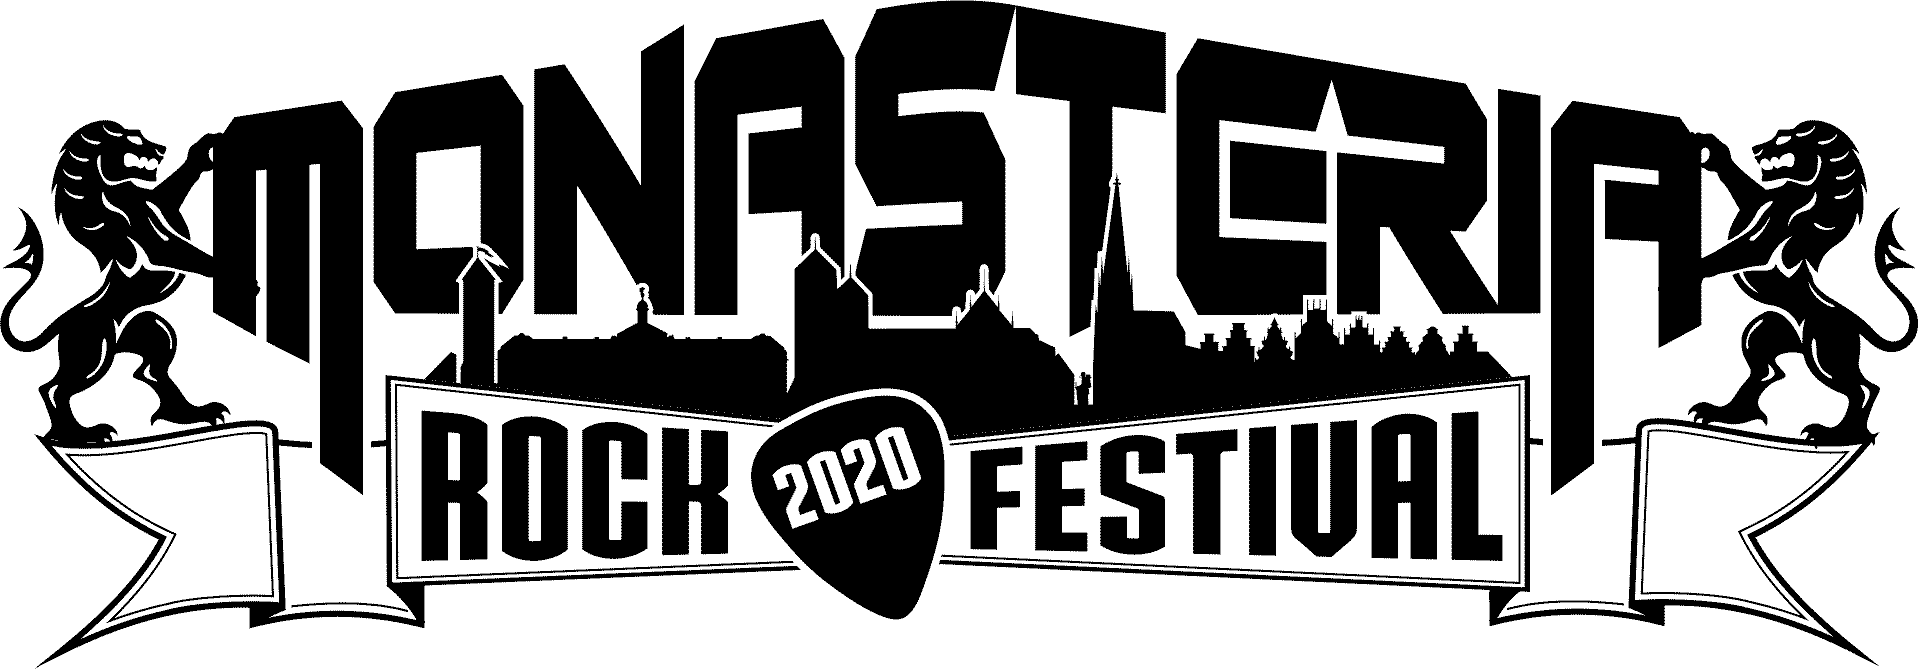 Monasteria Rock Festival in Münster